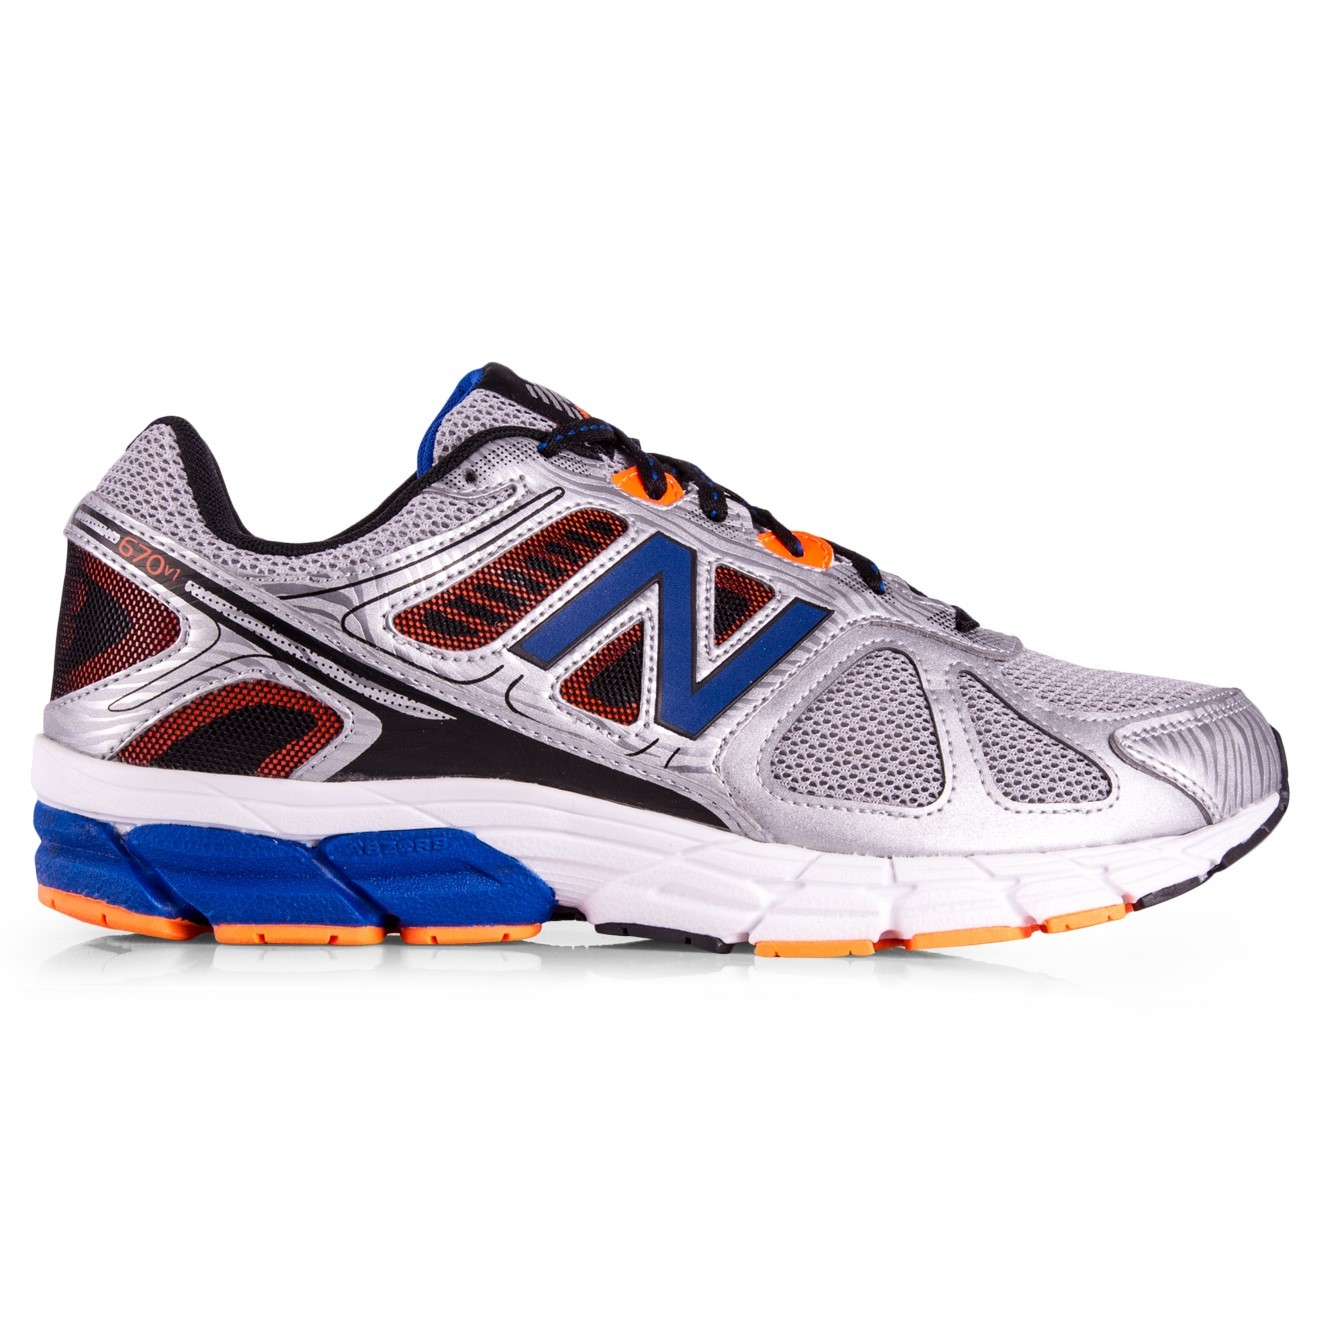 best loved c1e3a befed New Balance 670 - Mens Running Shoes